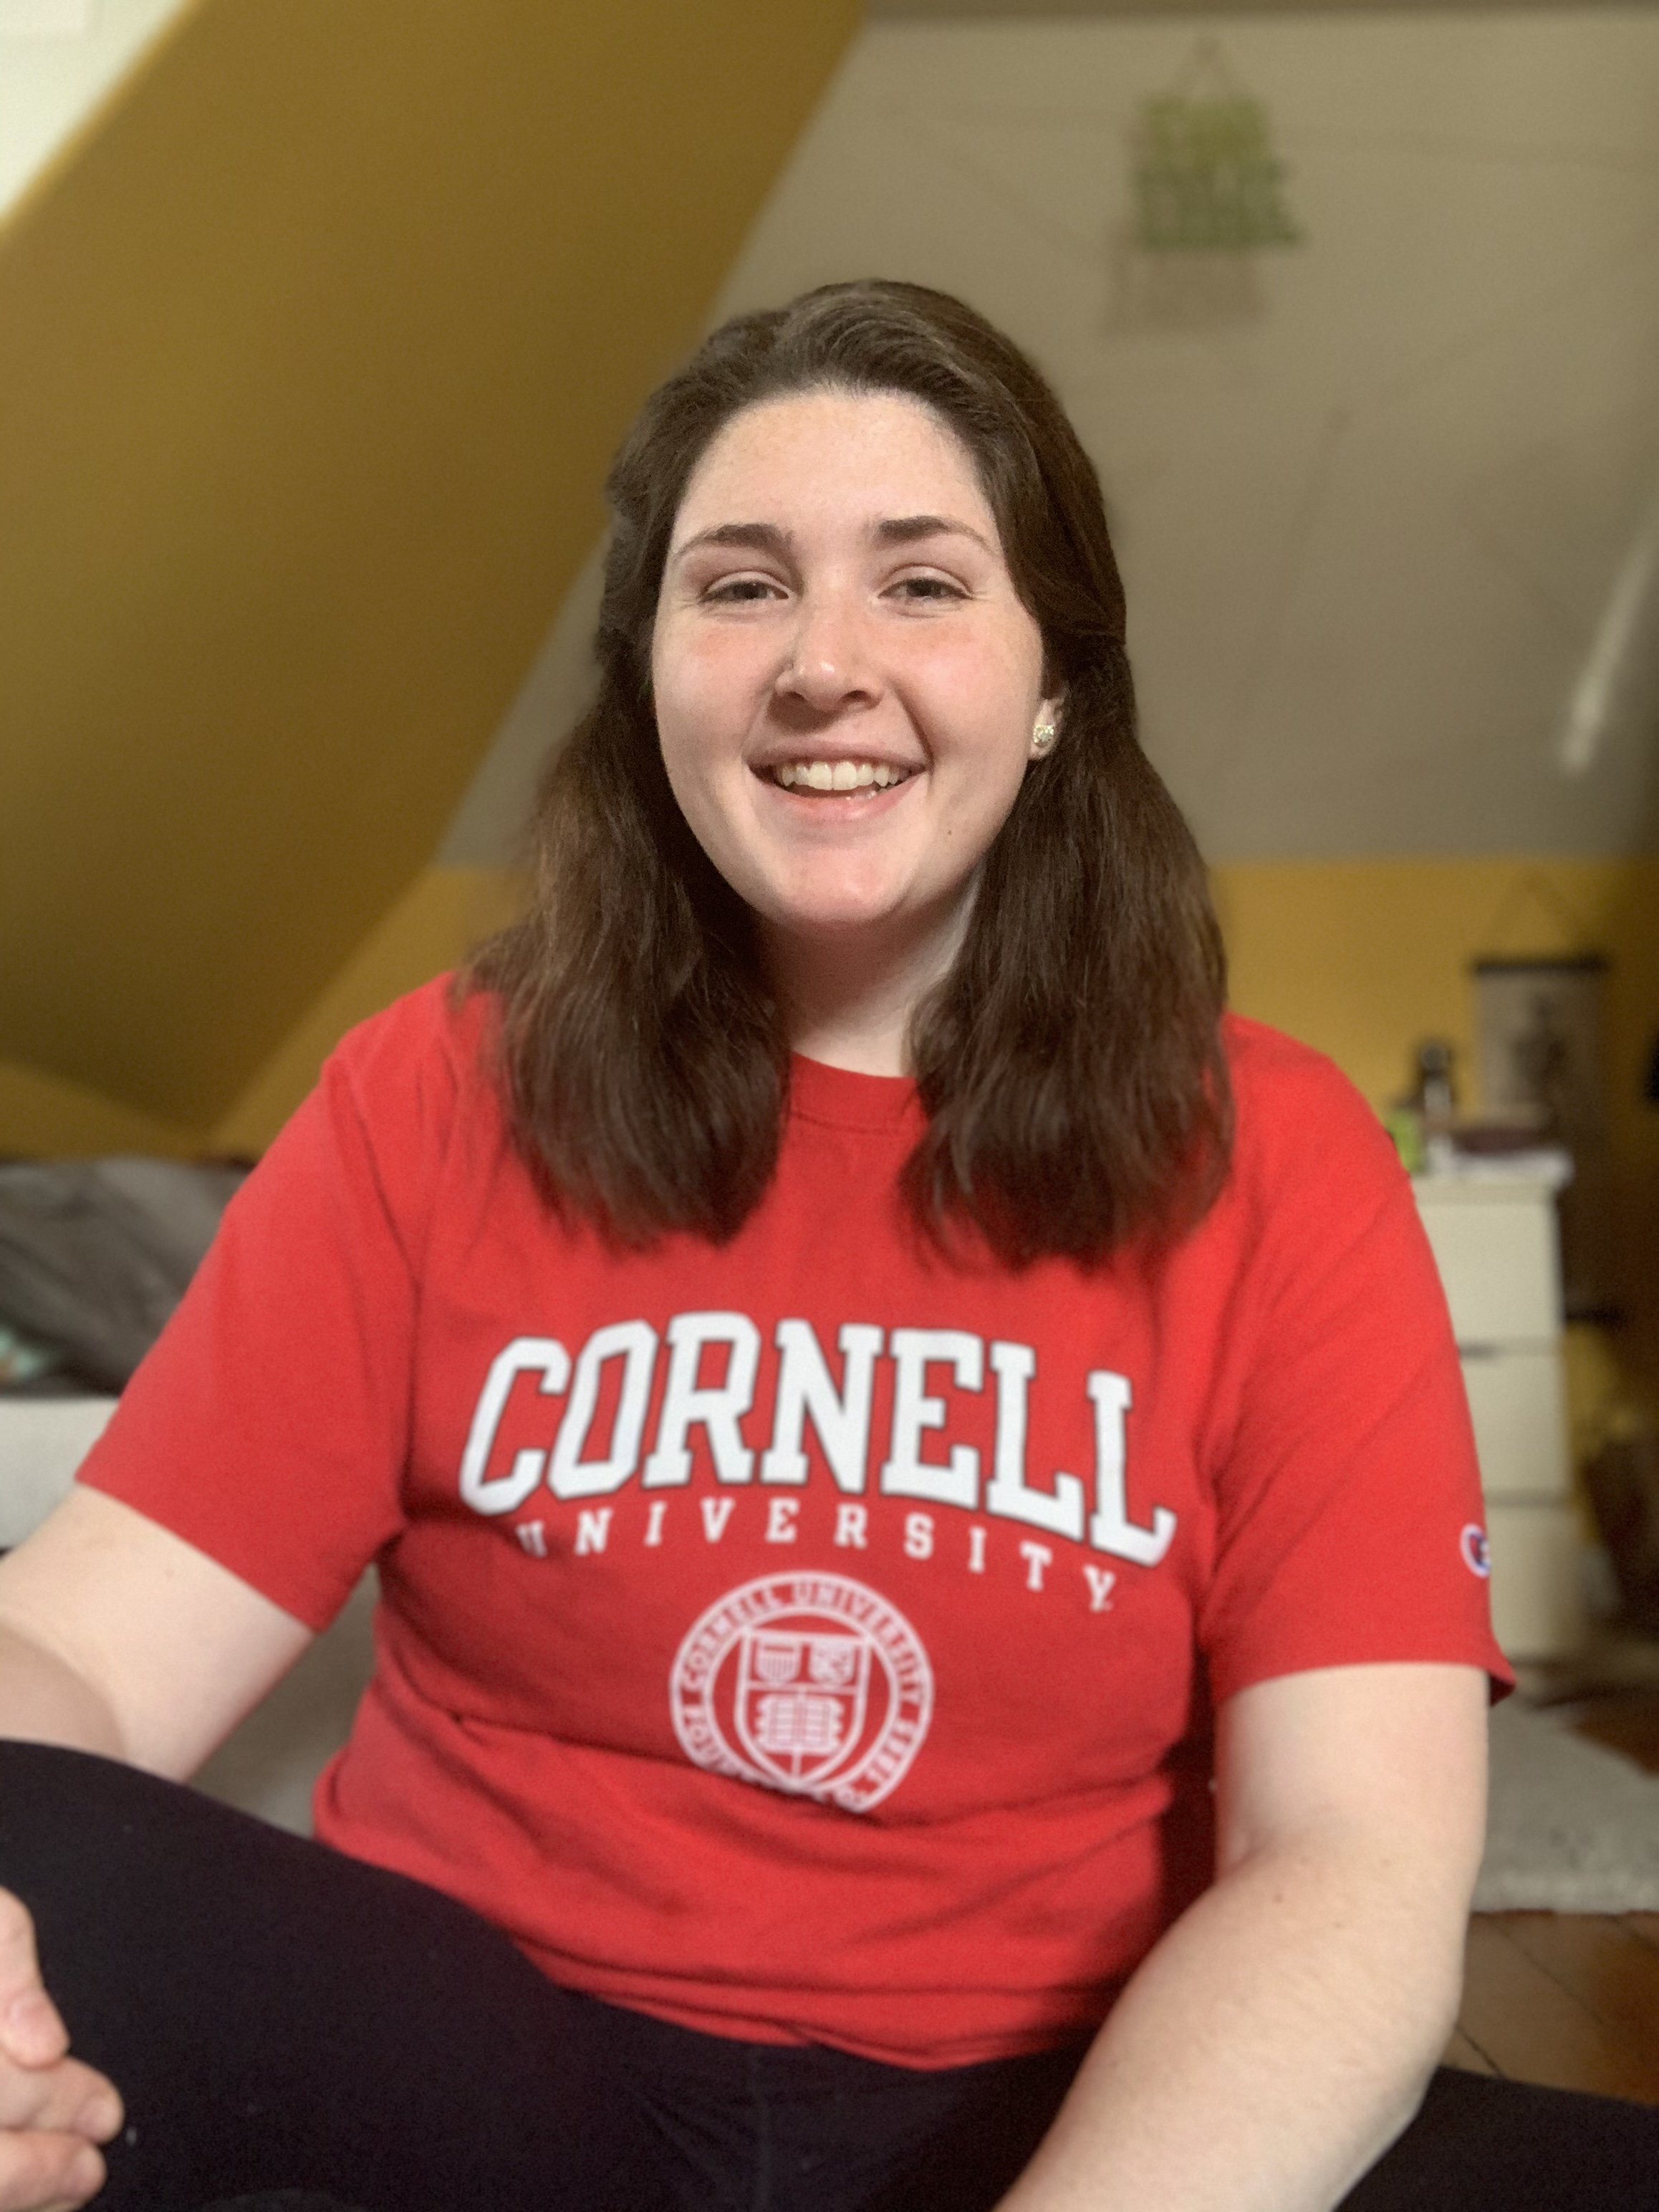 Biological sciences major Kimberly Zullo poses with Cornell t-shirt.